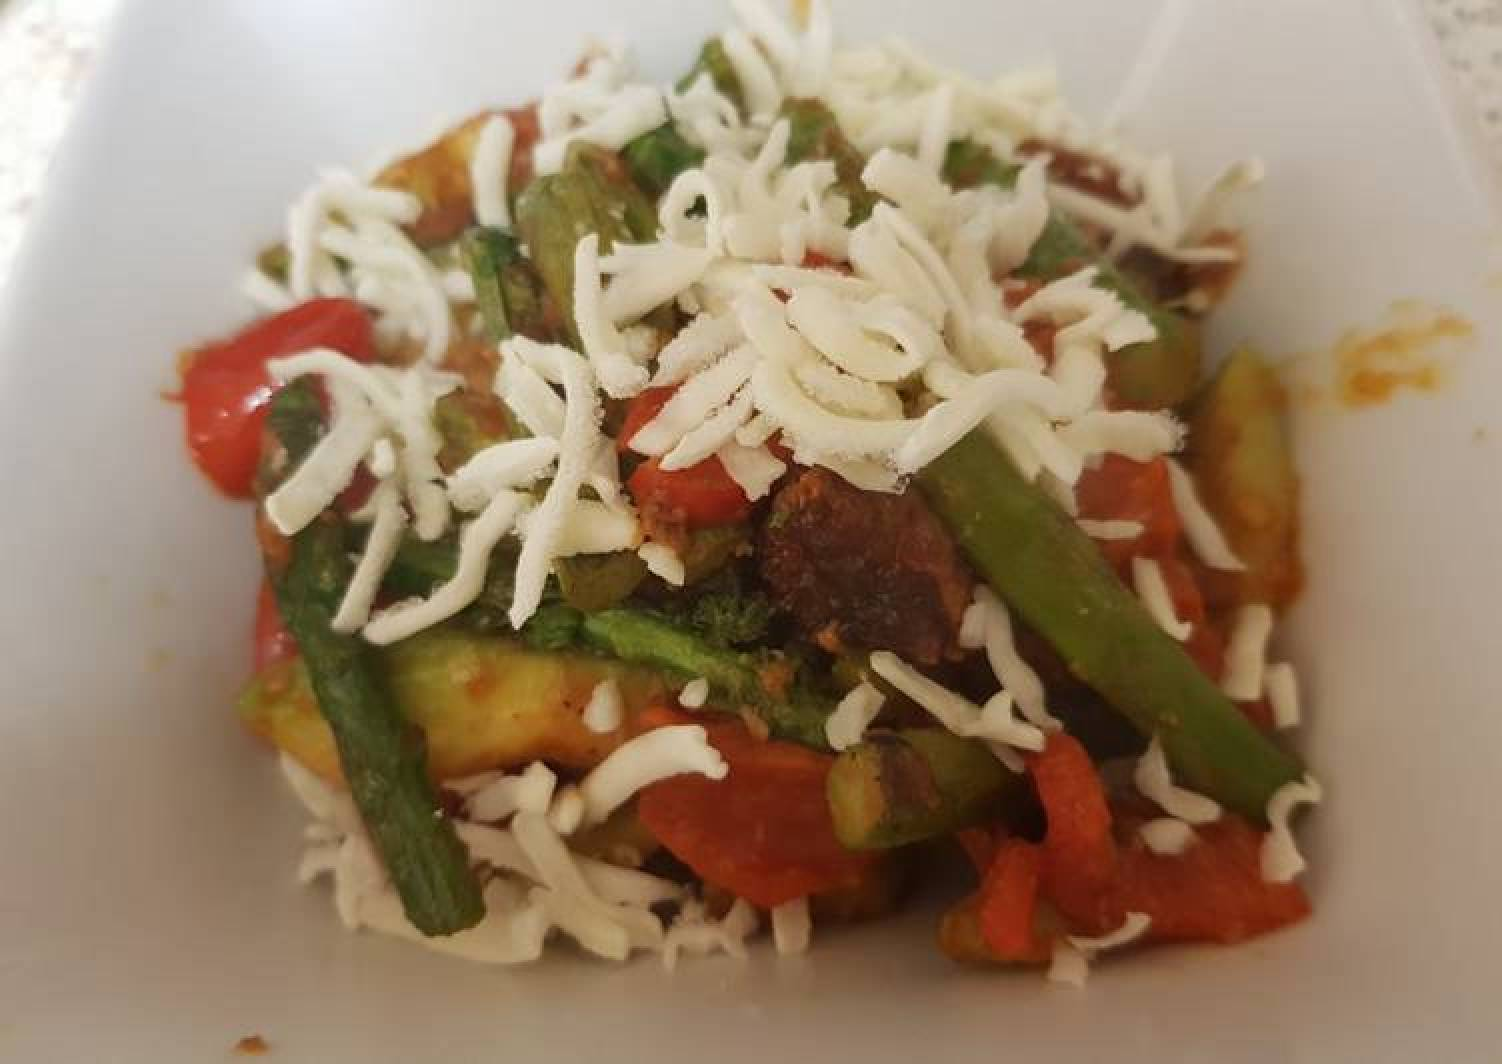 Avocado, Asparagus tomato with Grated mozarella Dish